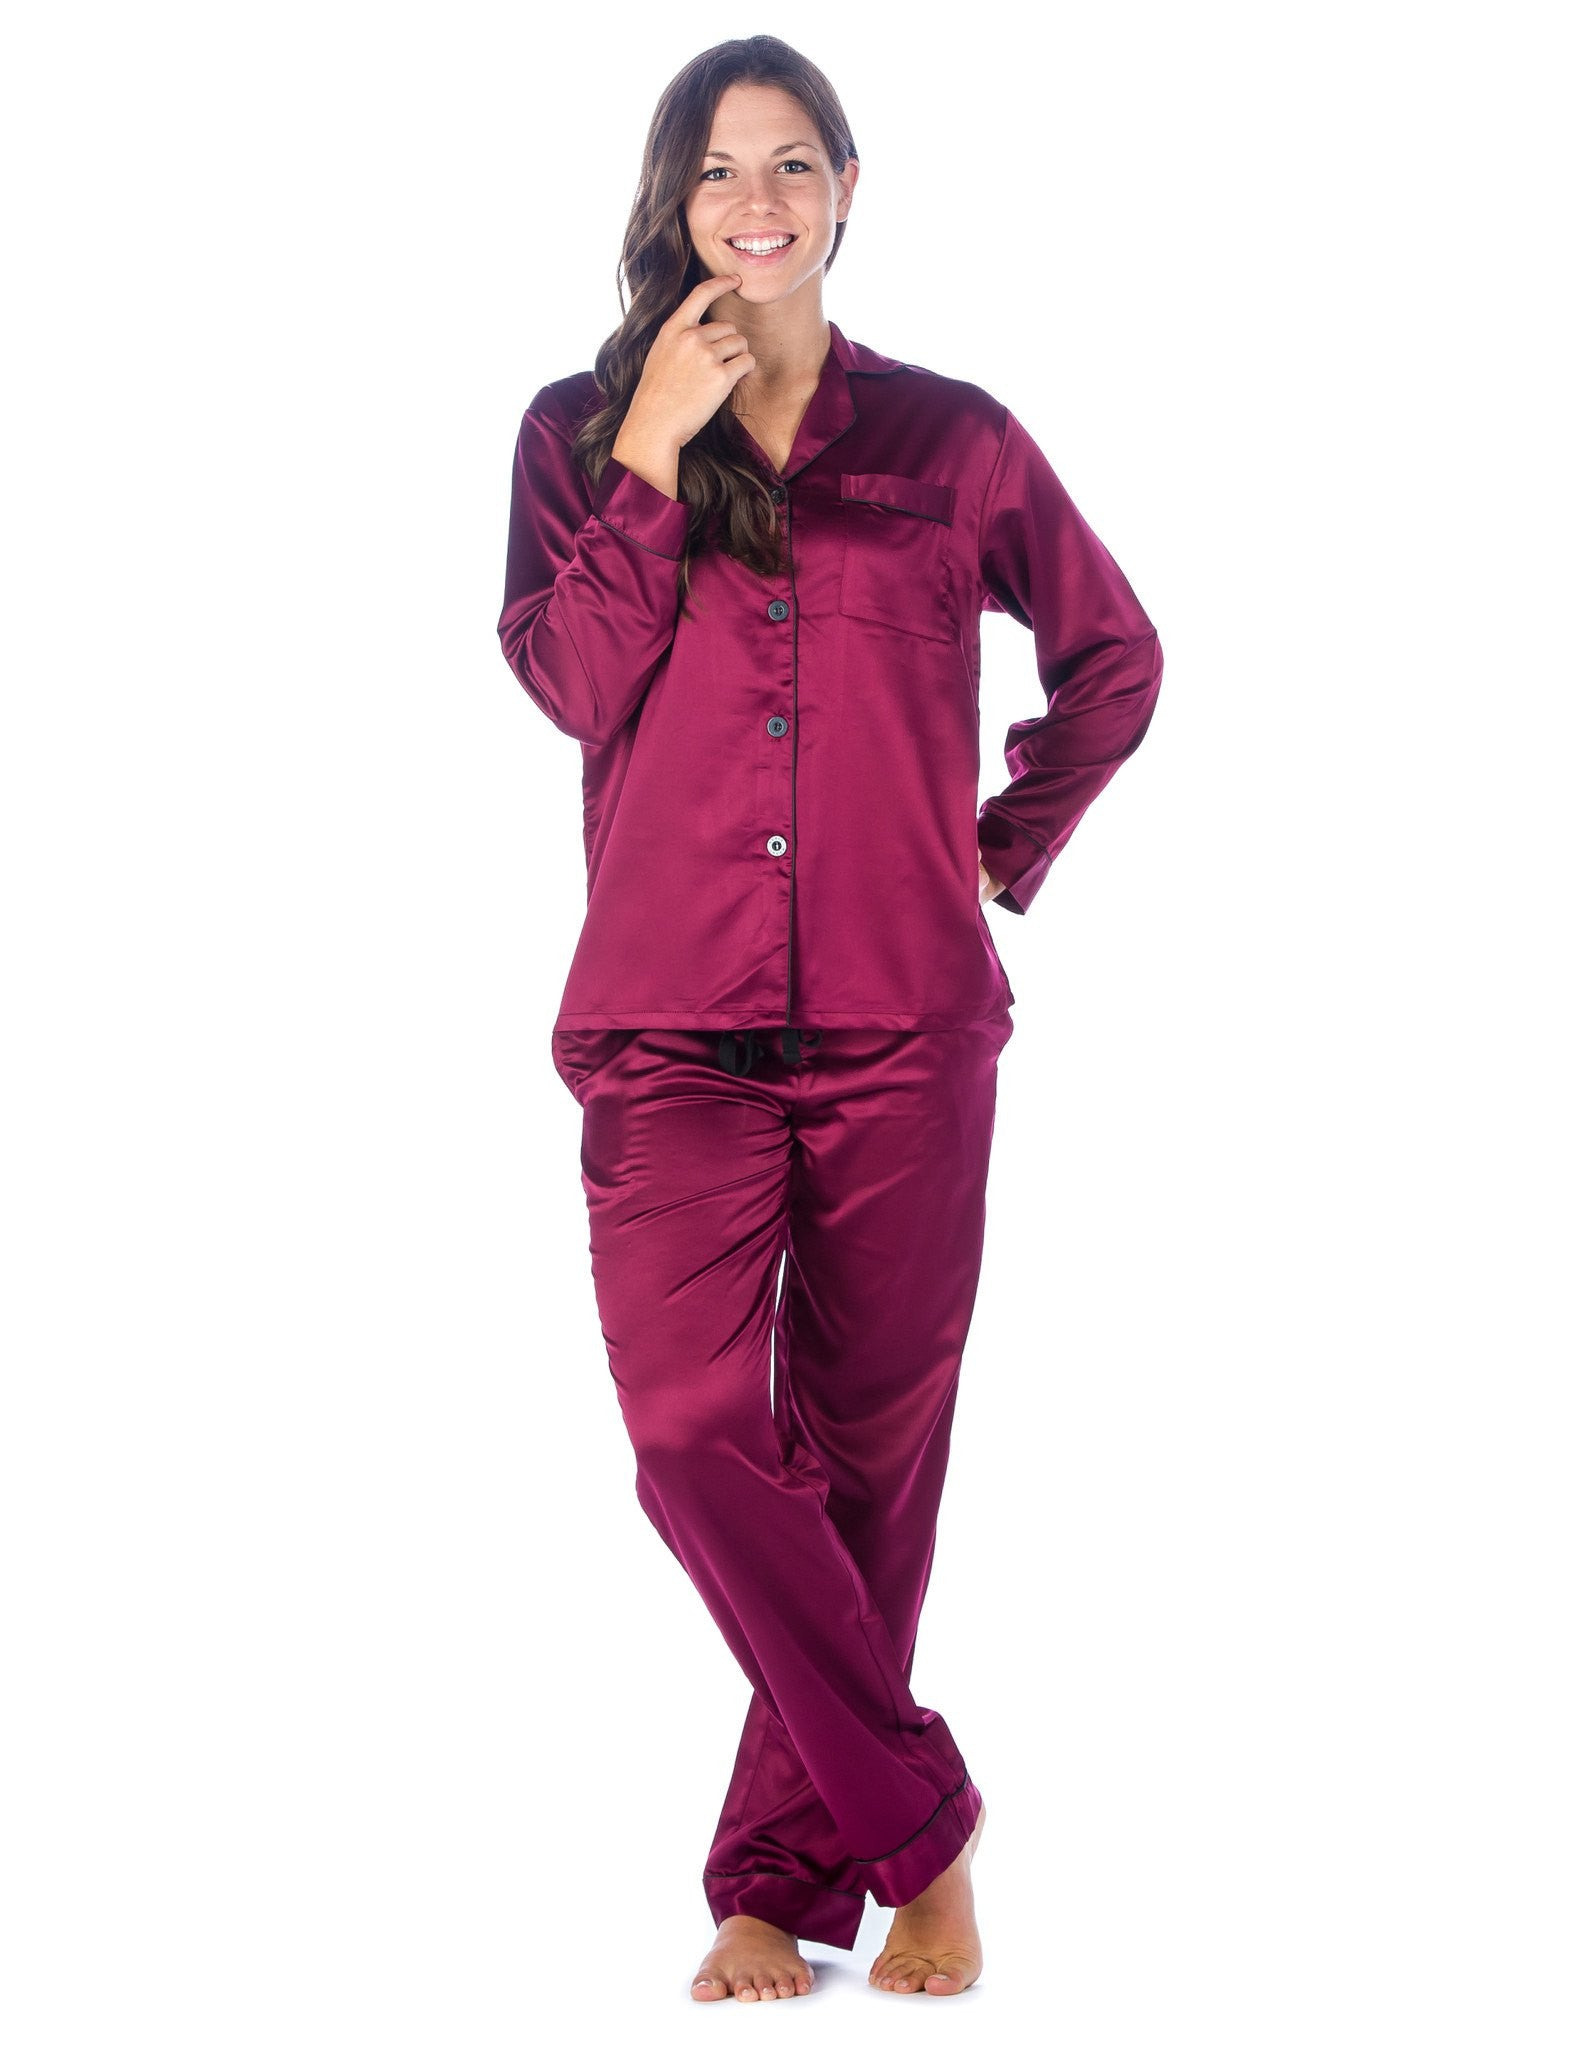 Women's Premium Satin Pajama Sleepwear Set